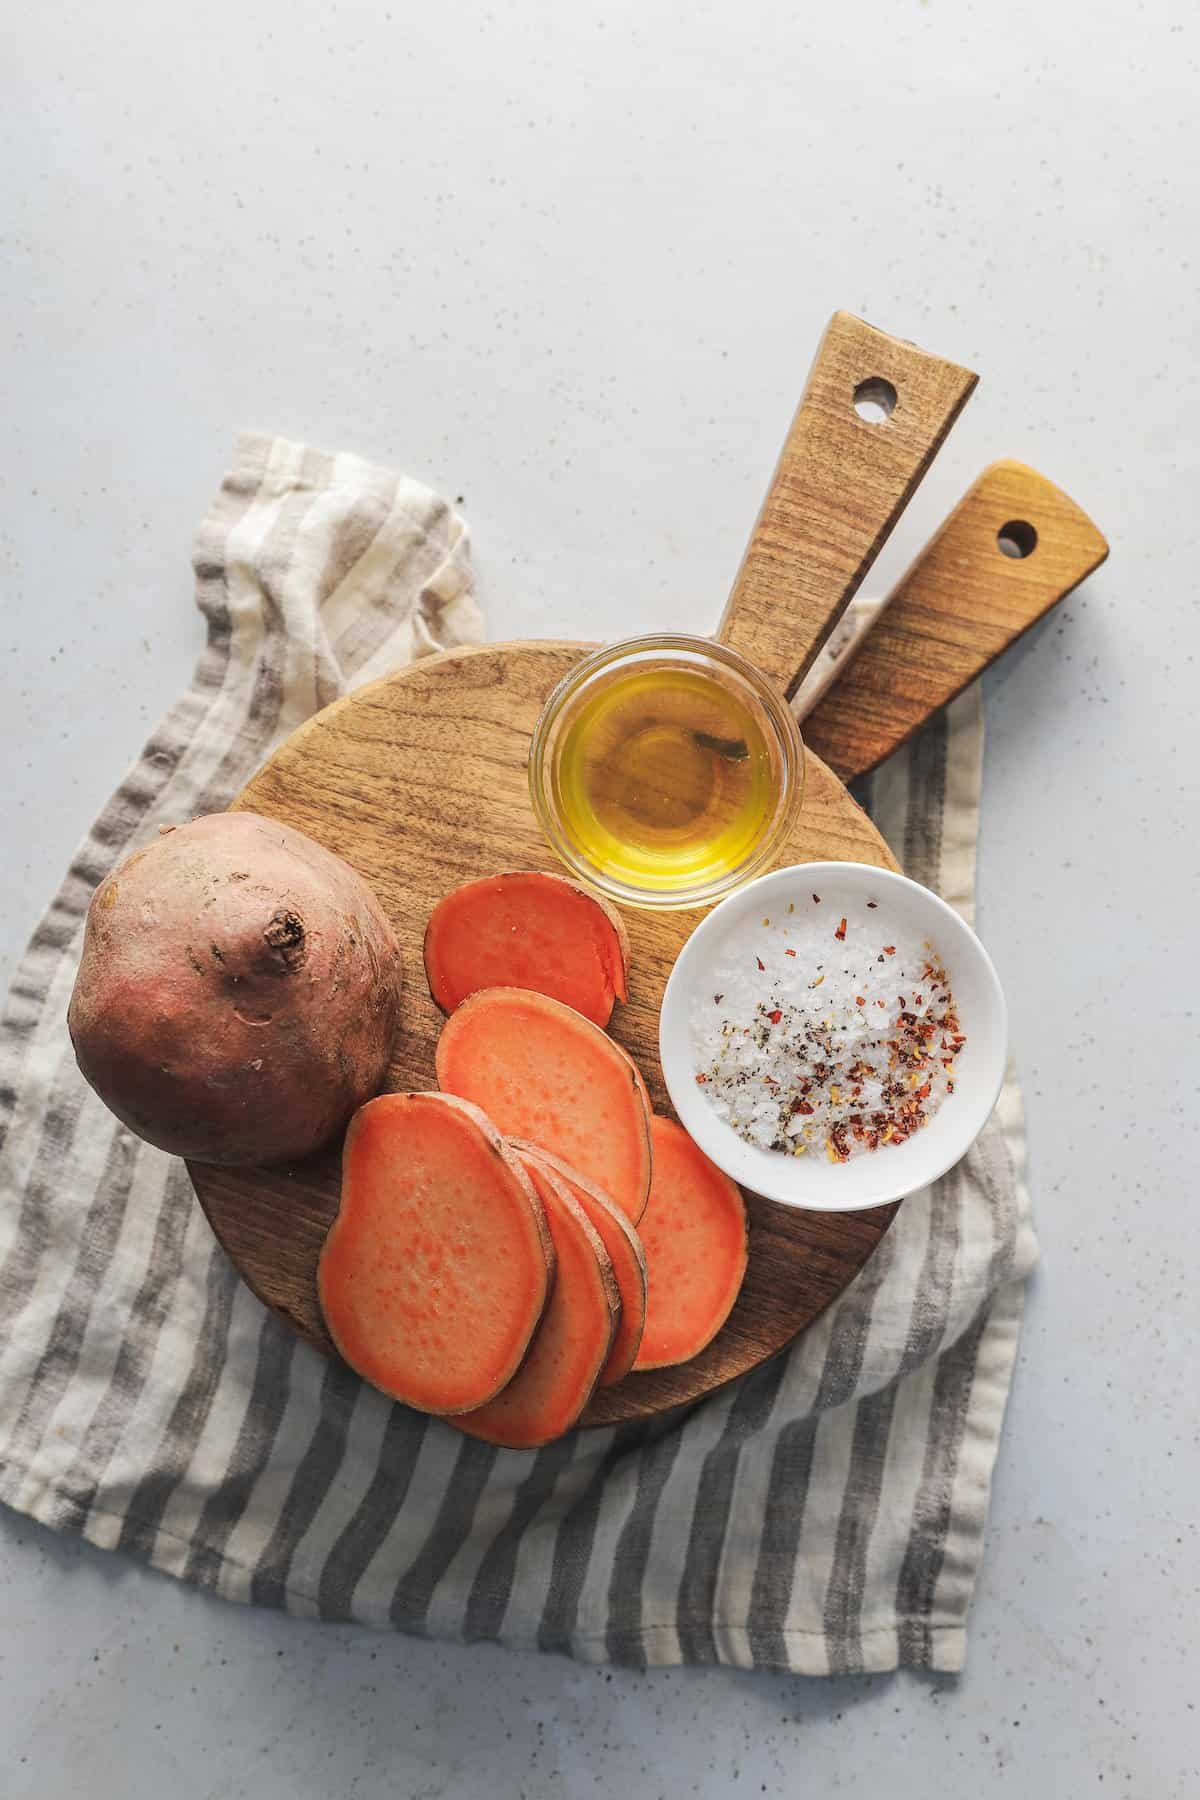 Sliced sweet potato on a wooden stand beside a dish of oil and a dish of salt